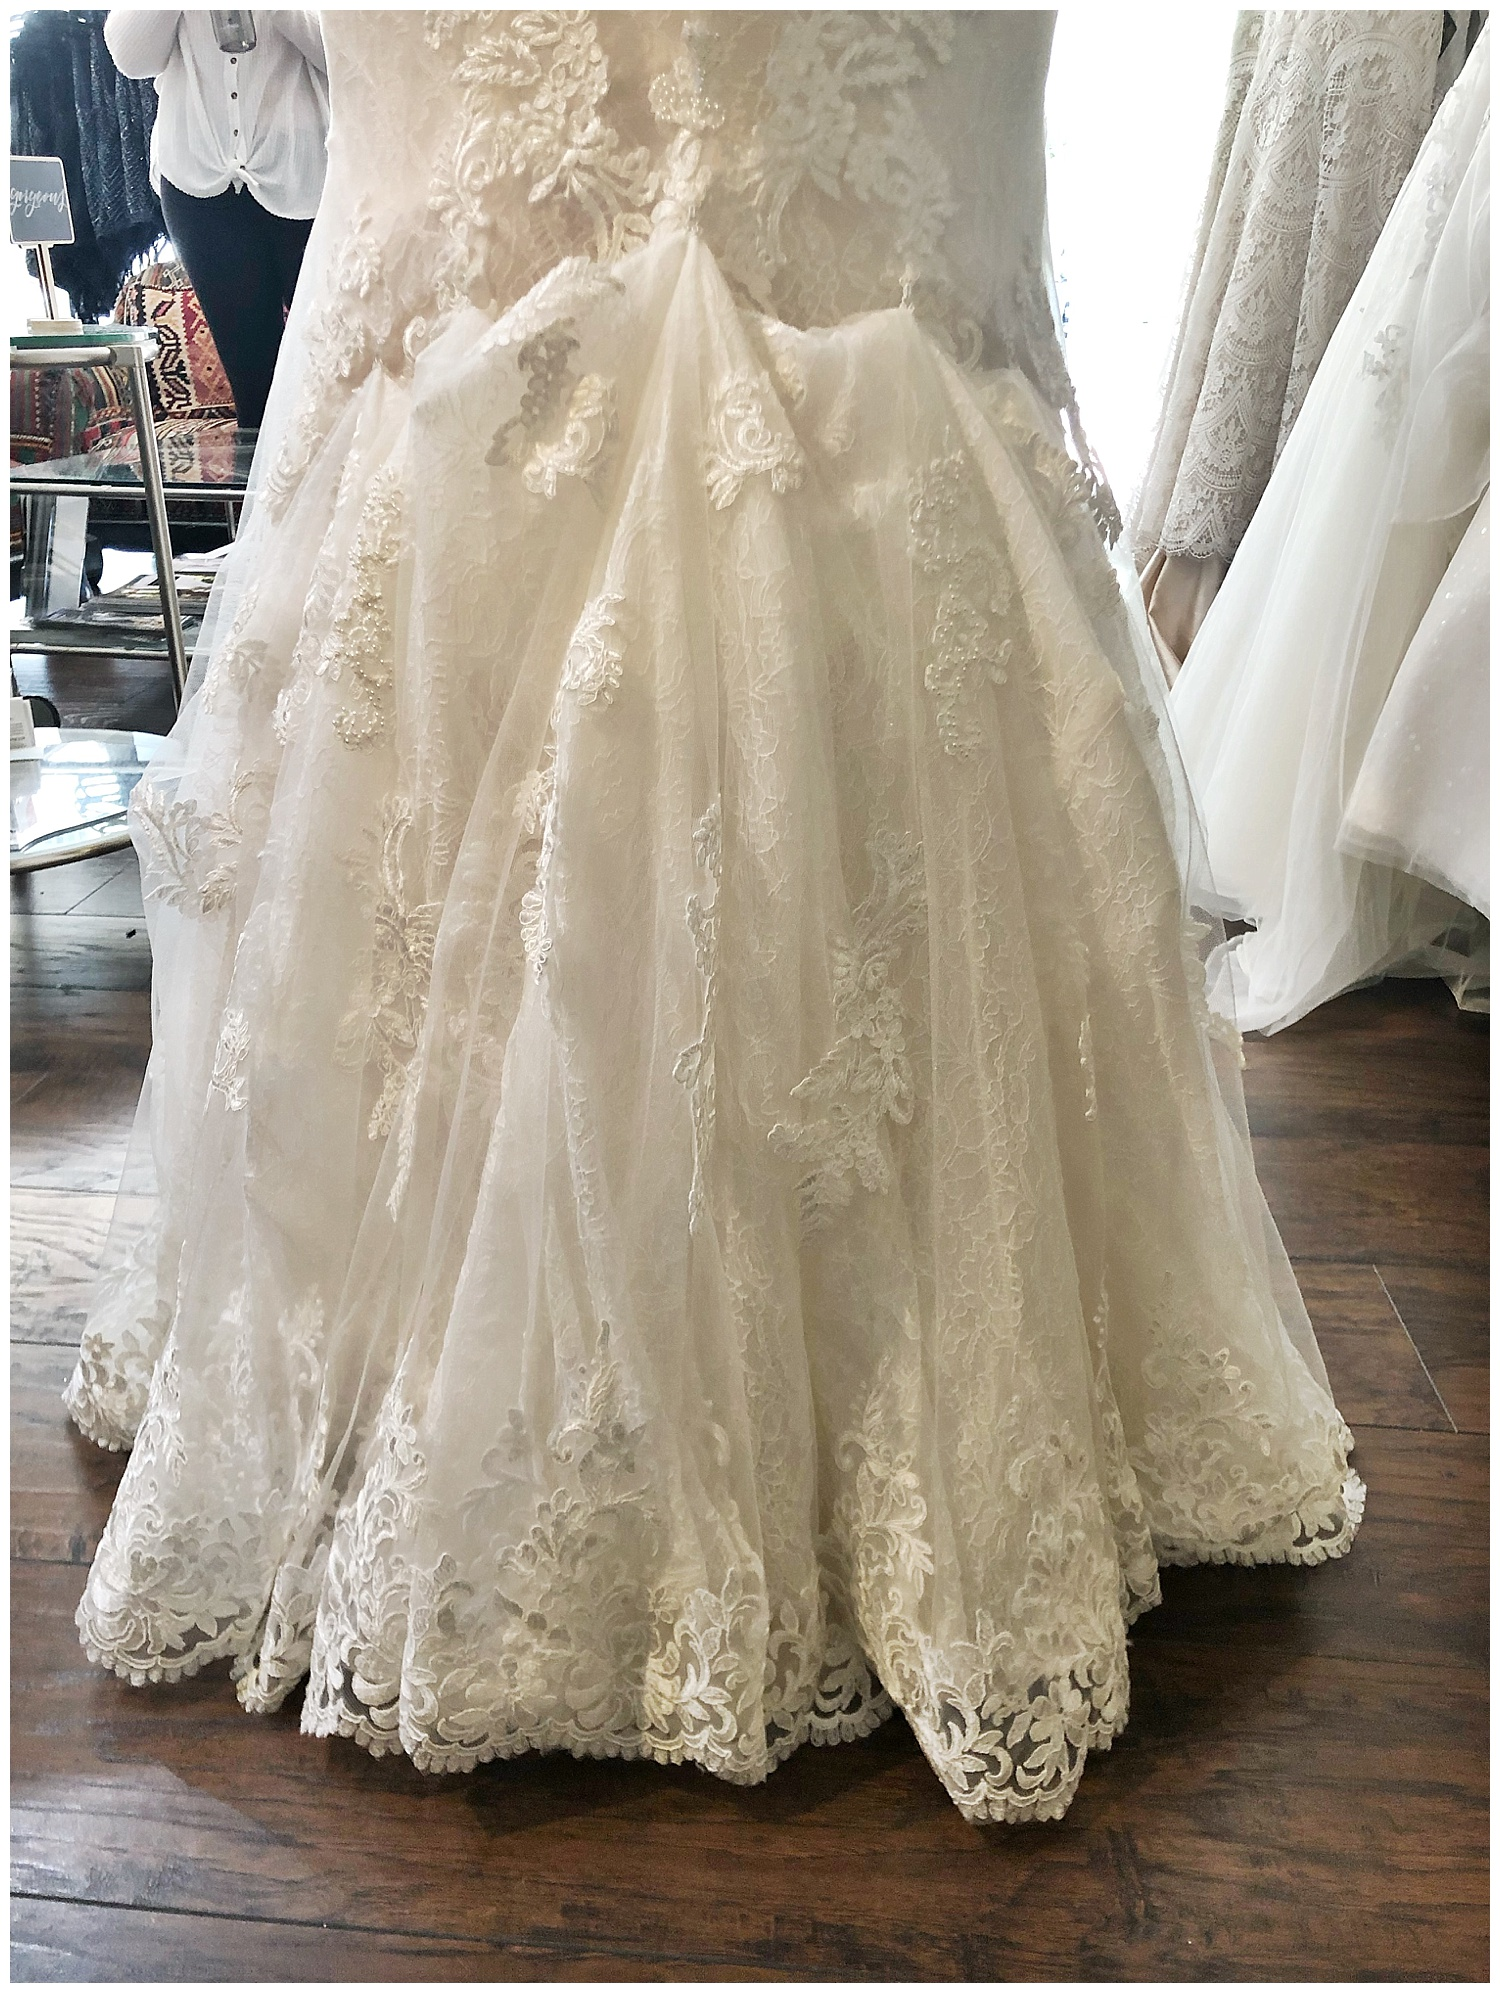 how-to-bustle-wedding-gown-epiphany-boutique.jpg